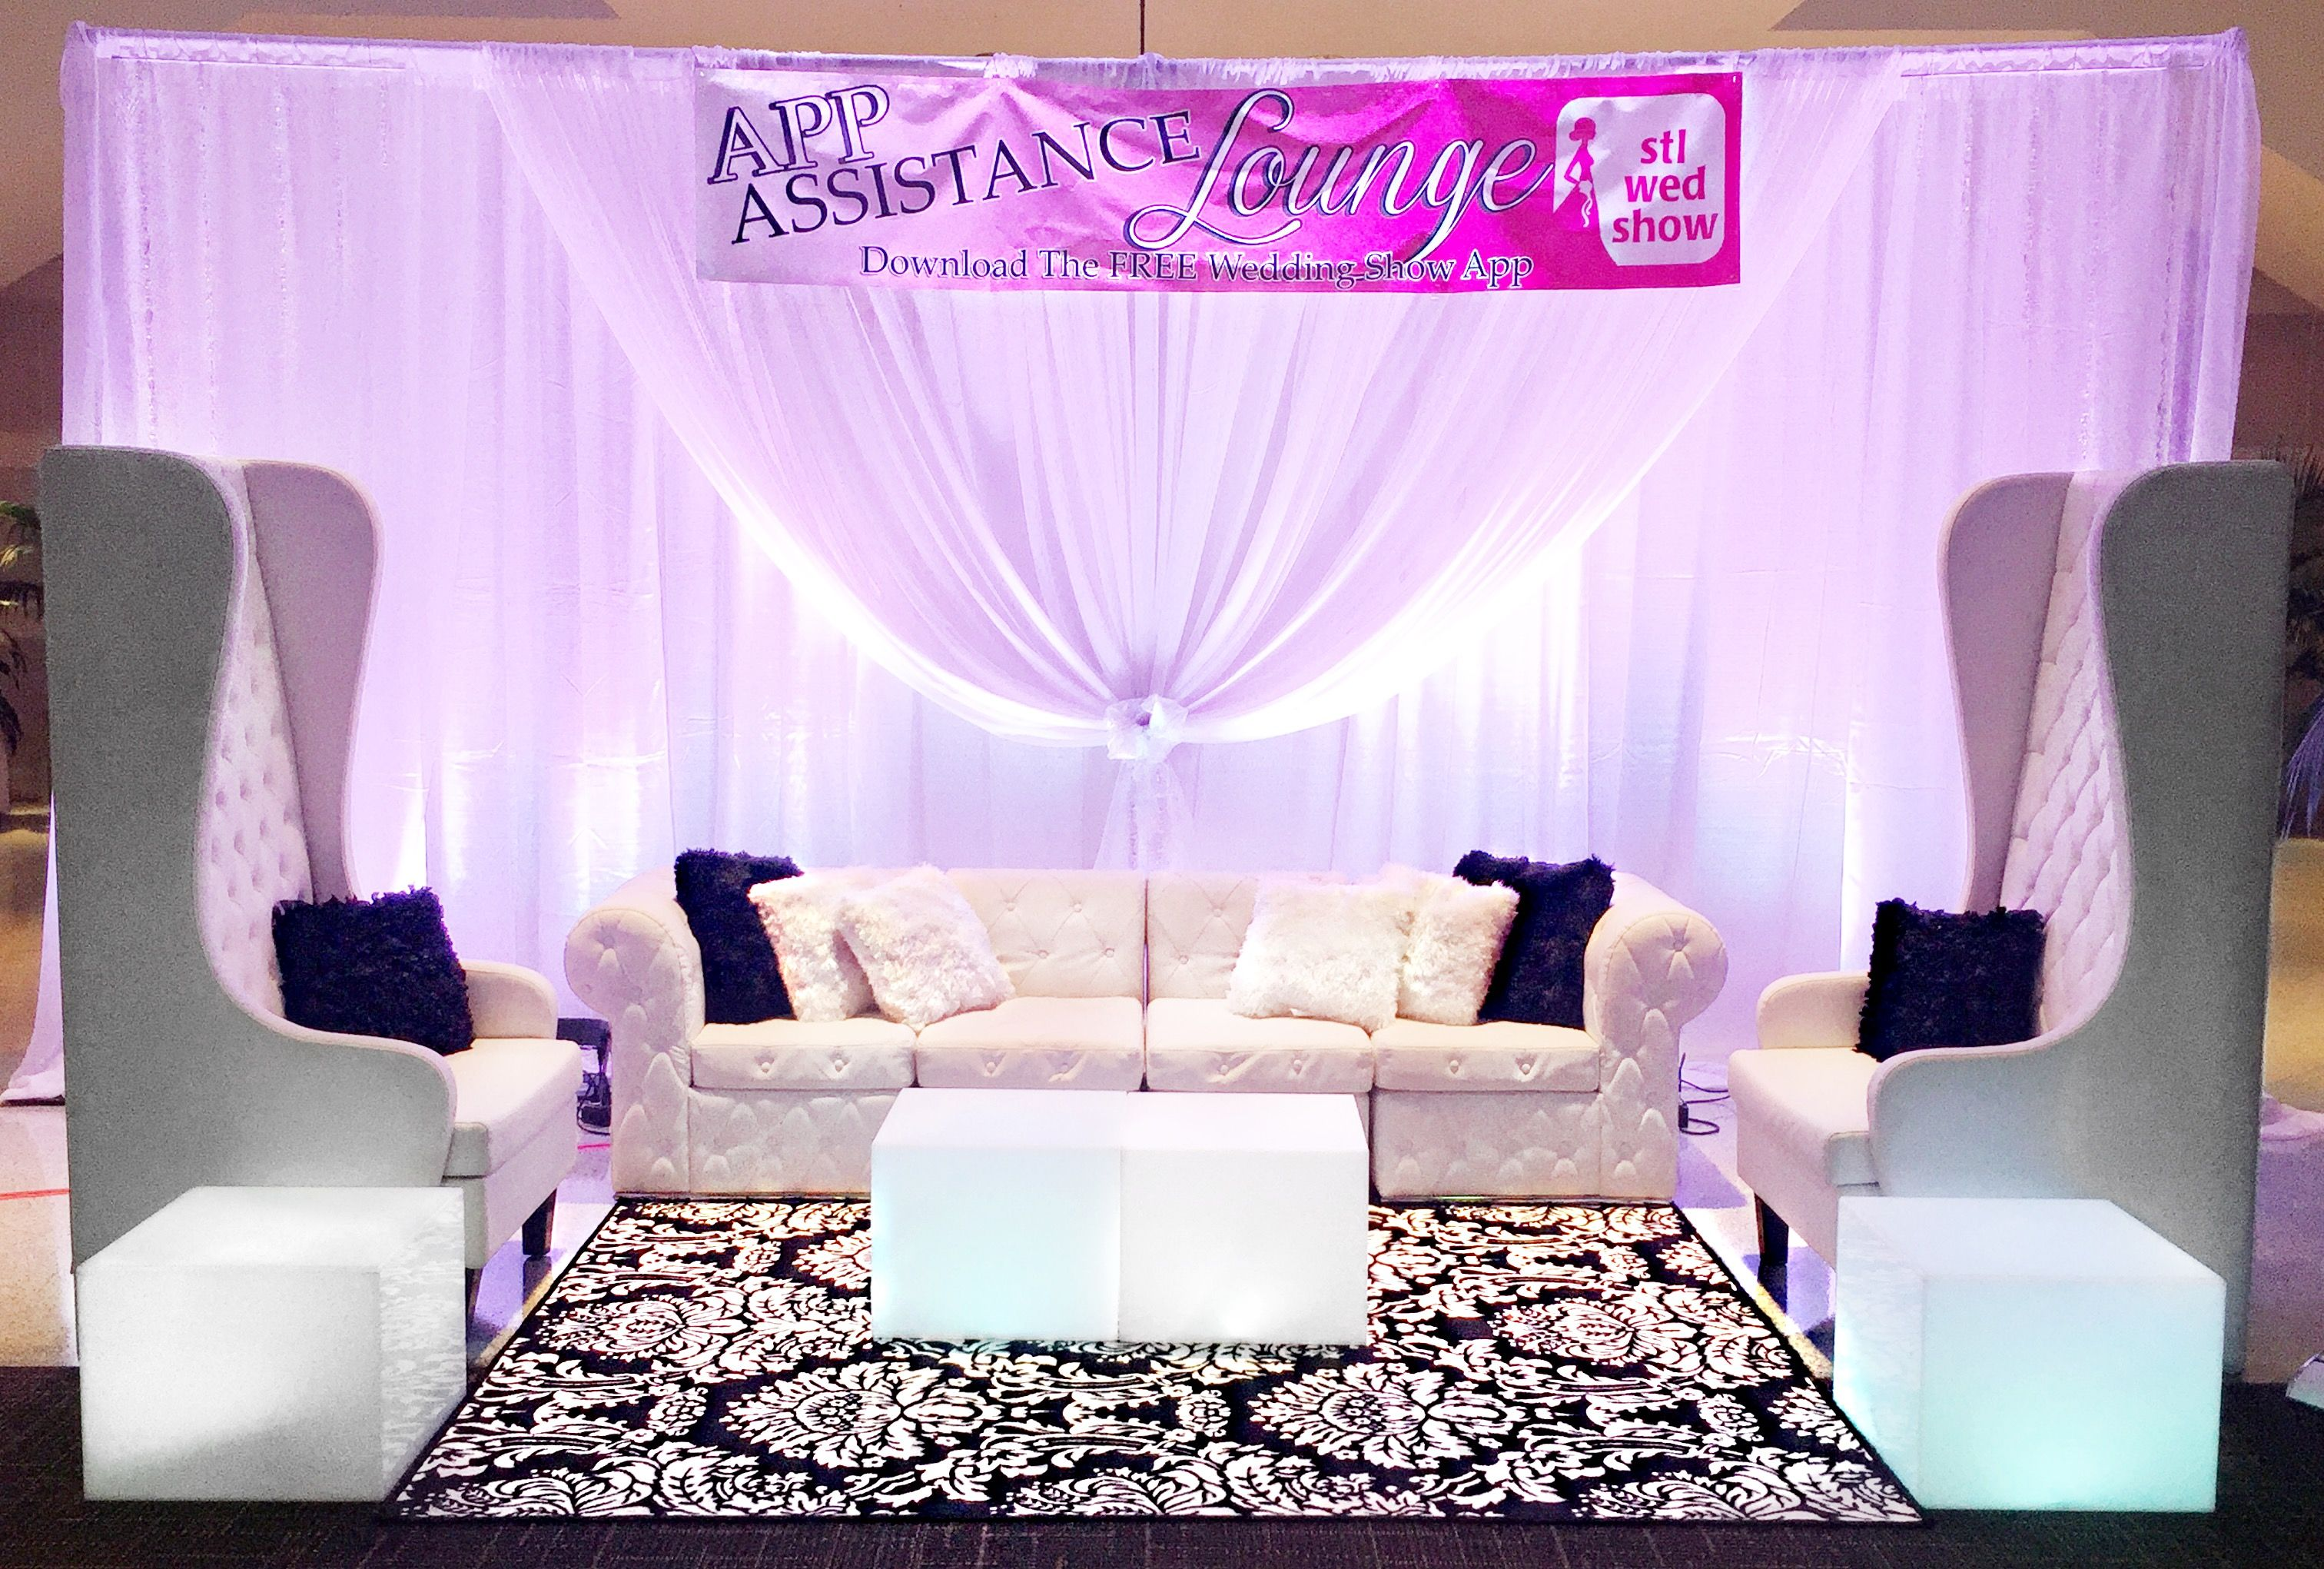 Party Rentals In St Louis St Louis Wedding Shows